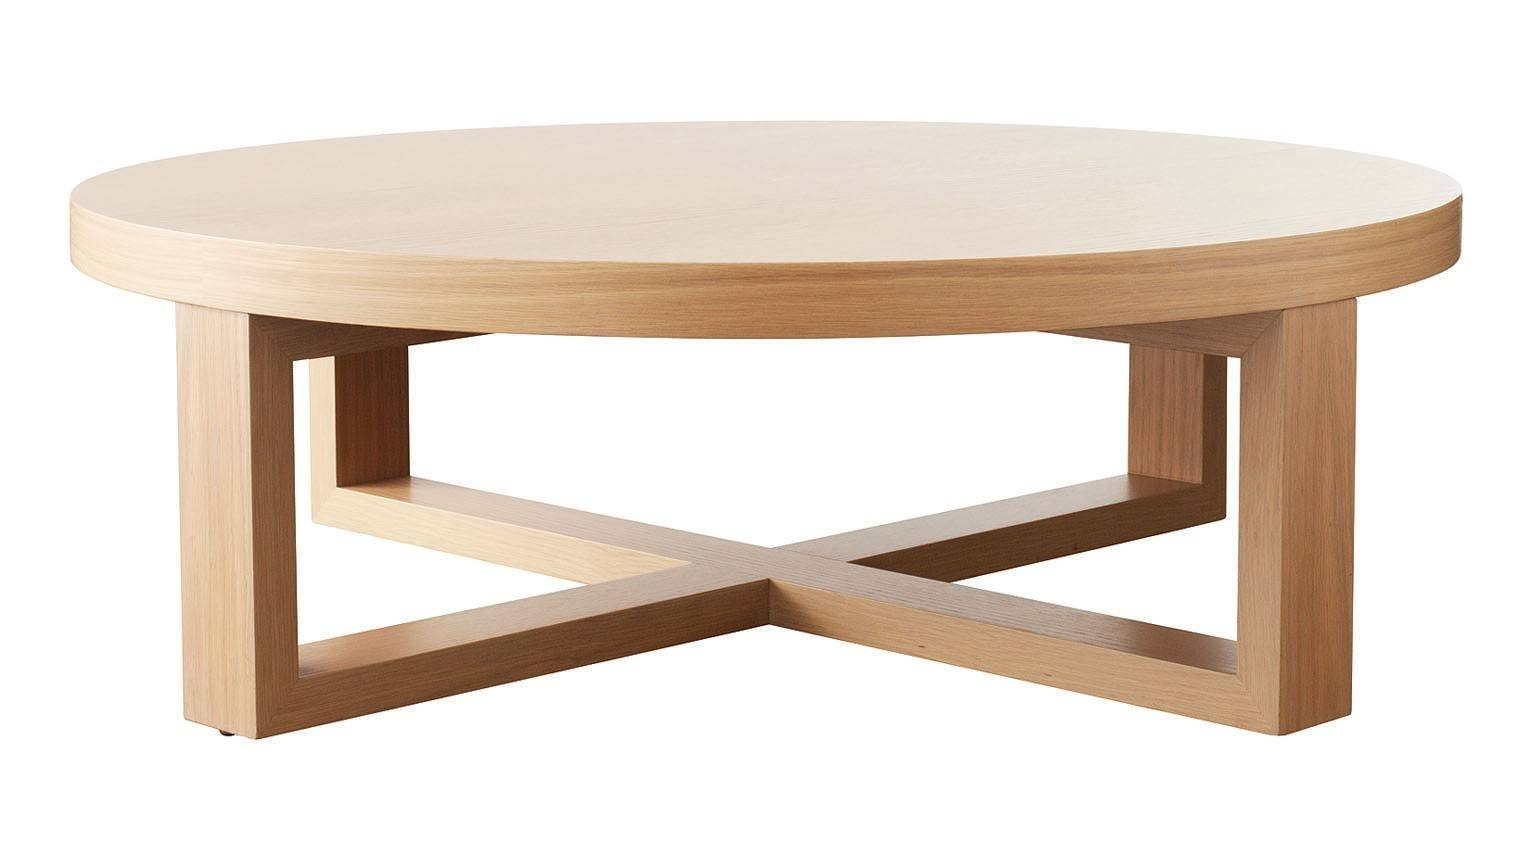 Light Wood Coffee Table. Contempo Lights Inc Luminart Serendipity throughout White and Oak Coffee Tables (Image 18 of 30)